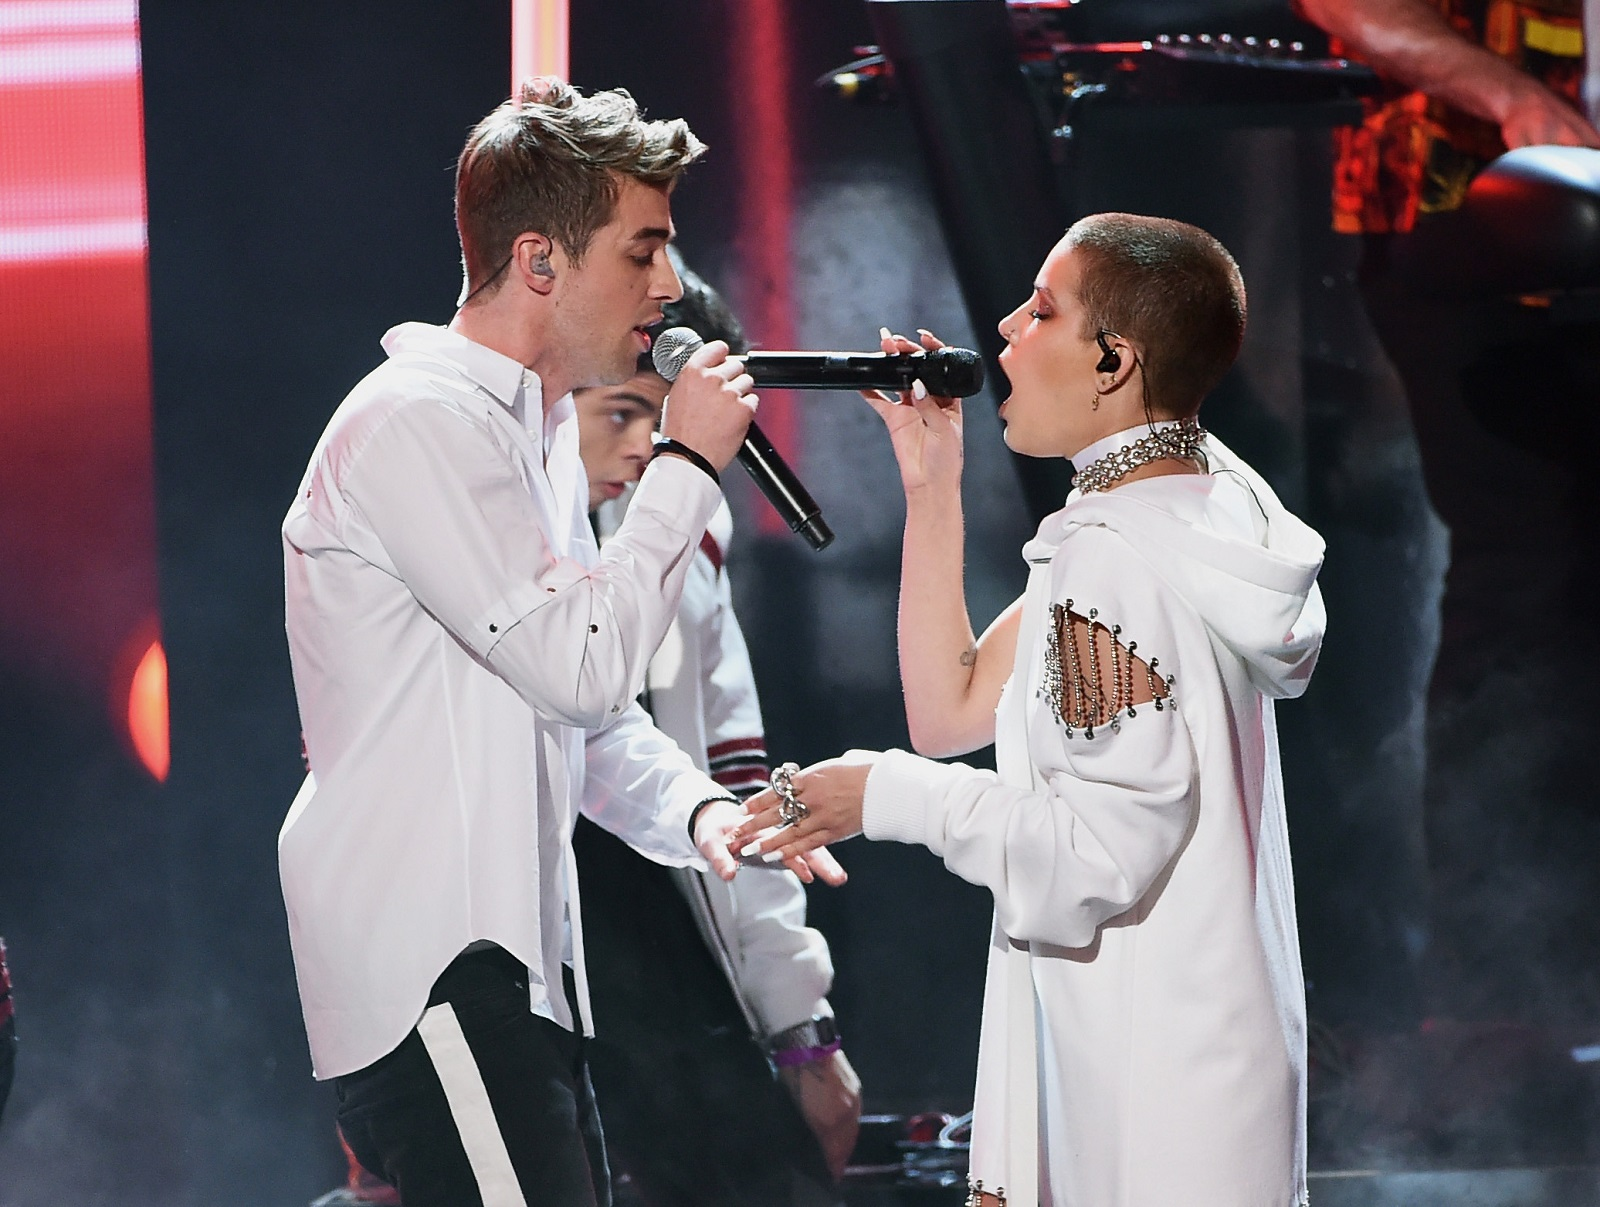 Singers Drew Taggart of The Chainsmokers, left, and  Halsey.  (Getty Images)